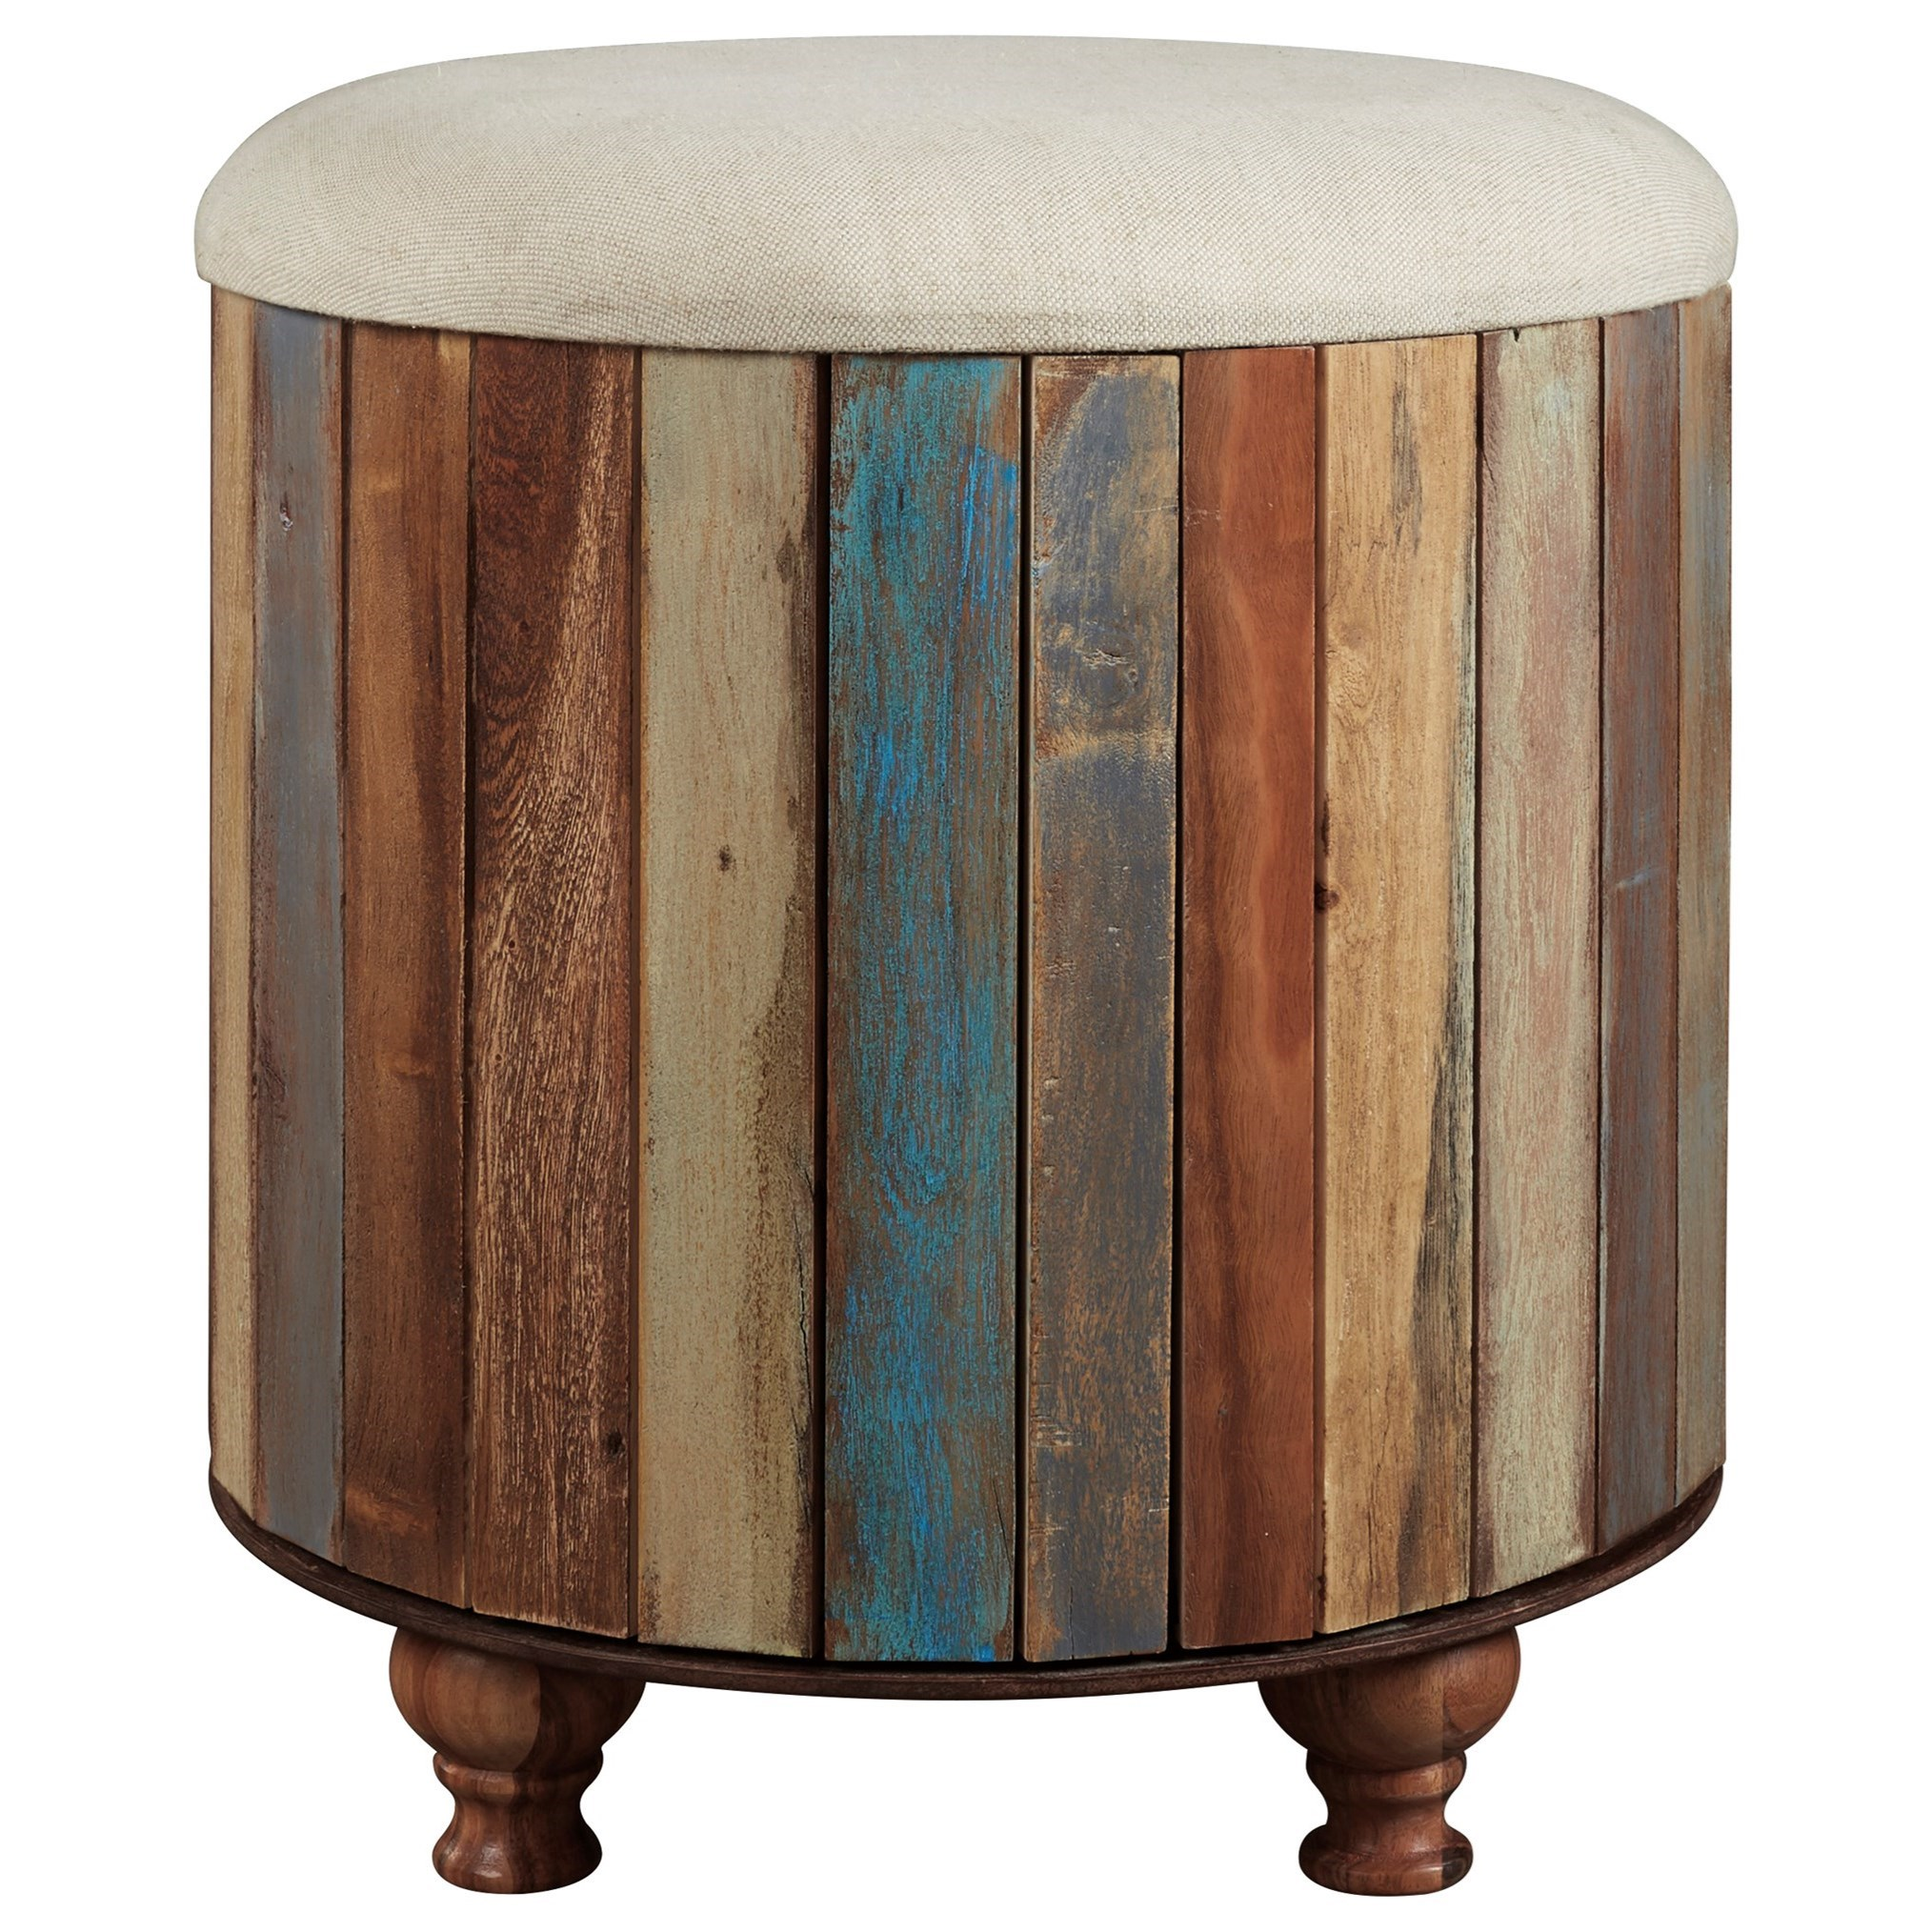 Oristano Storage Ottoman by Ashley at Morris Home